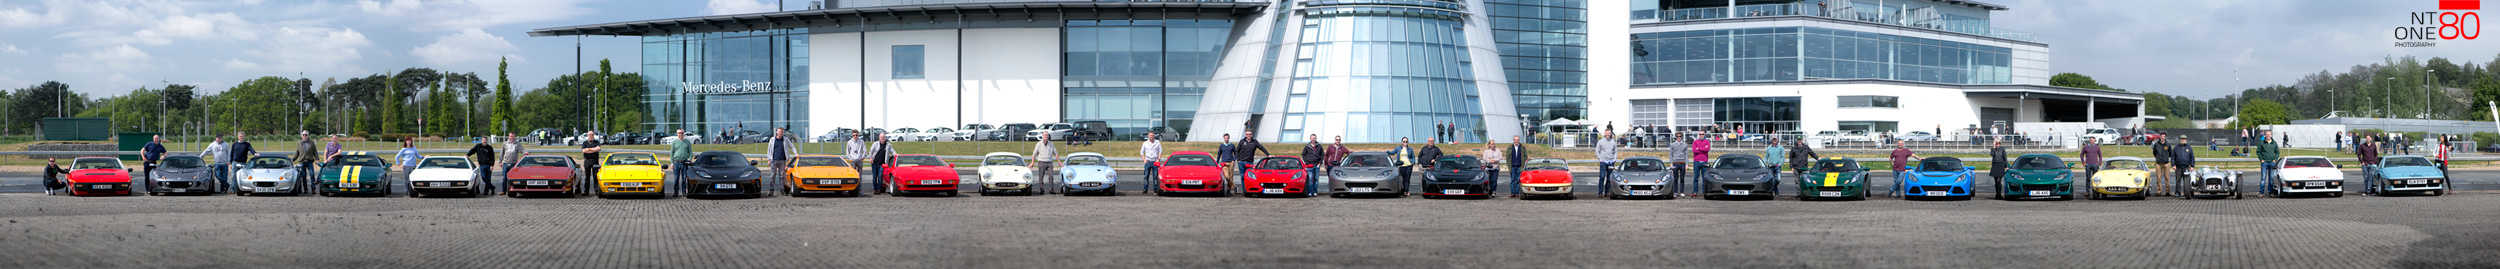 Lotus Day group shot